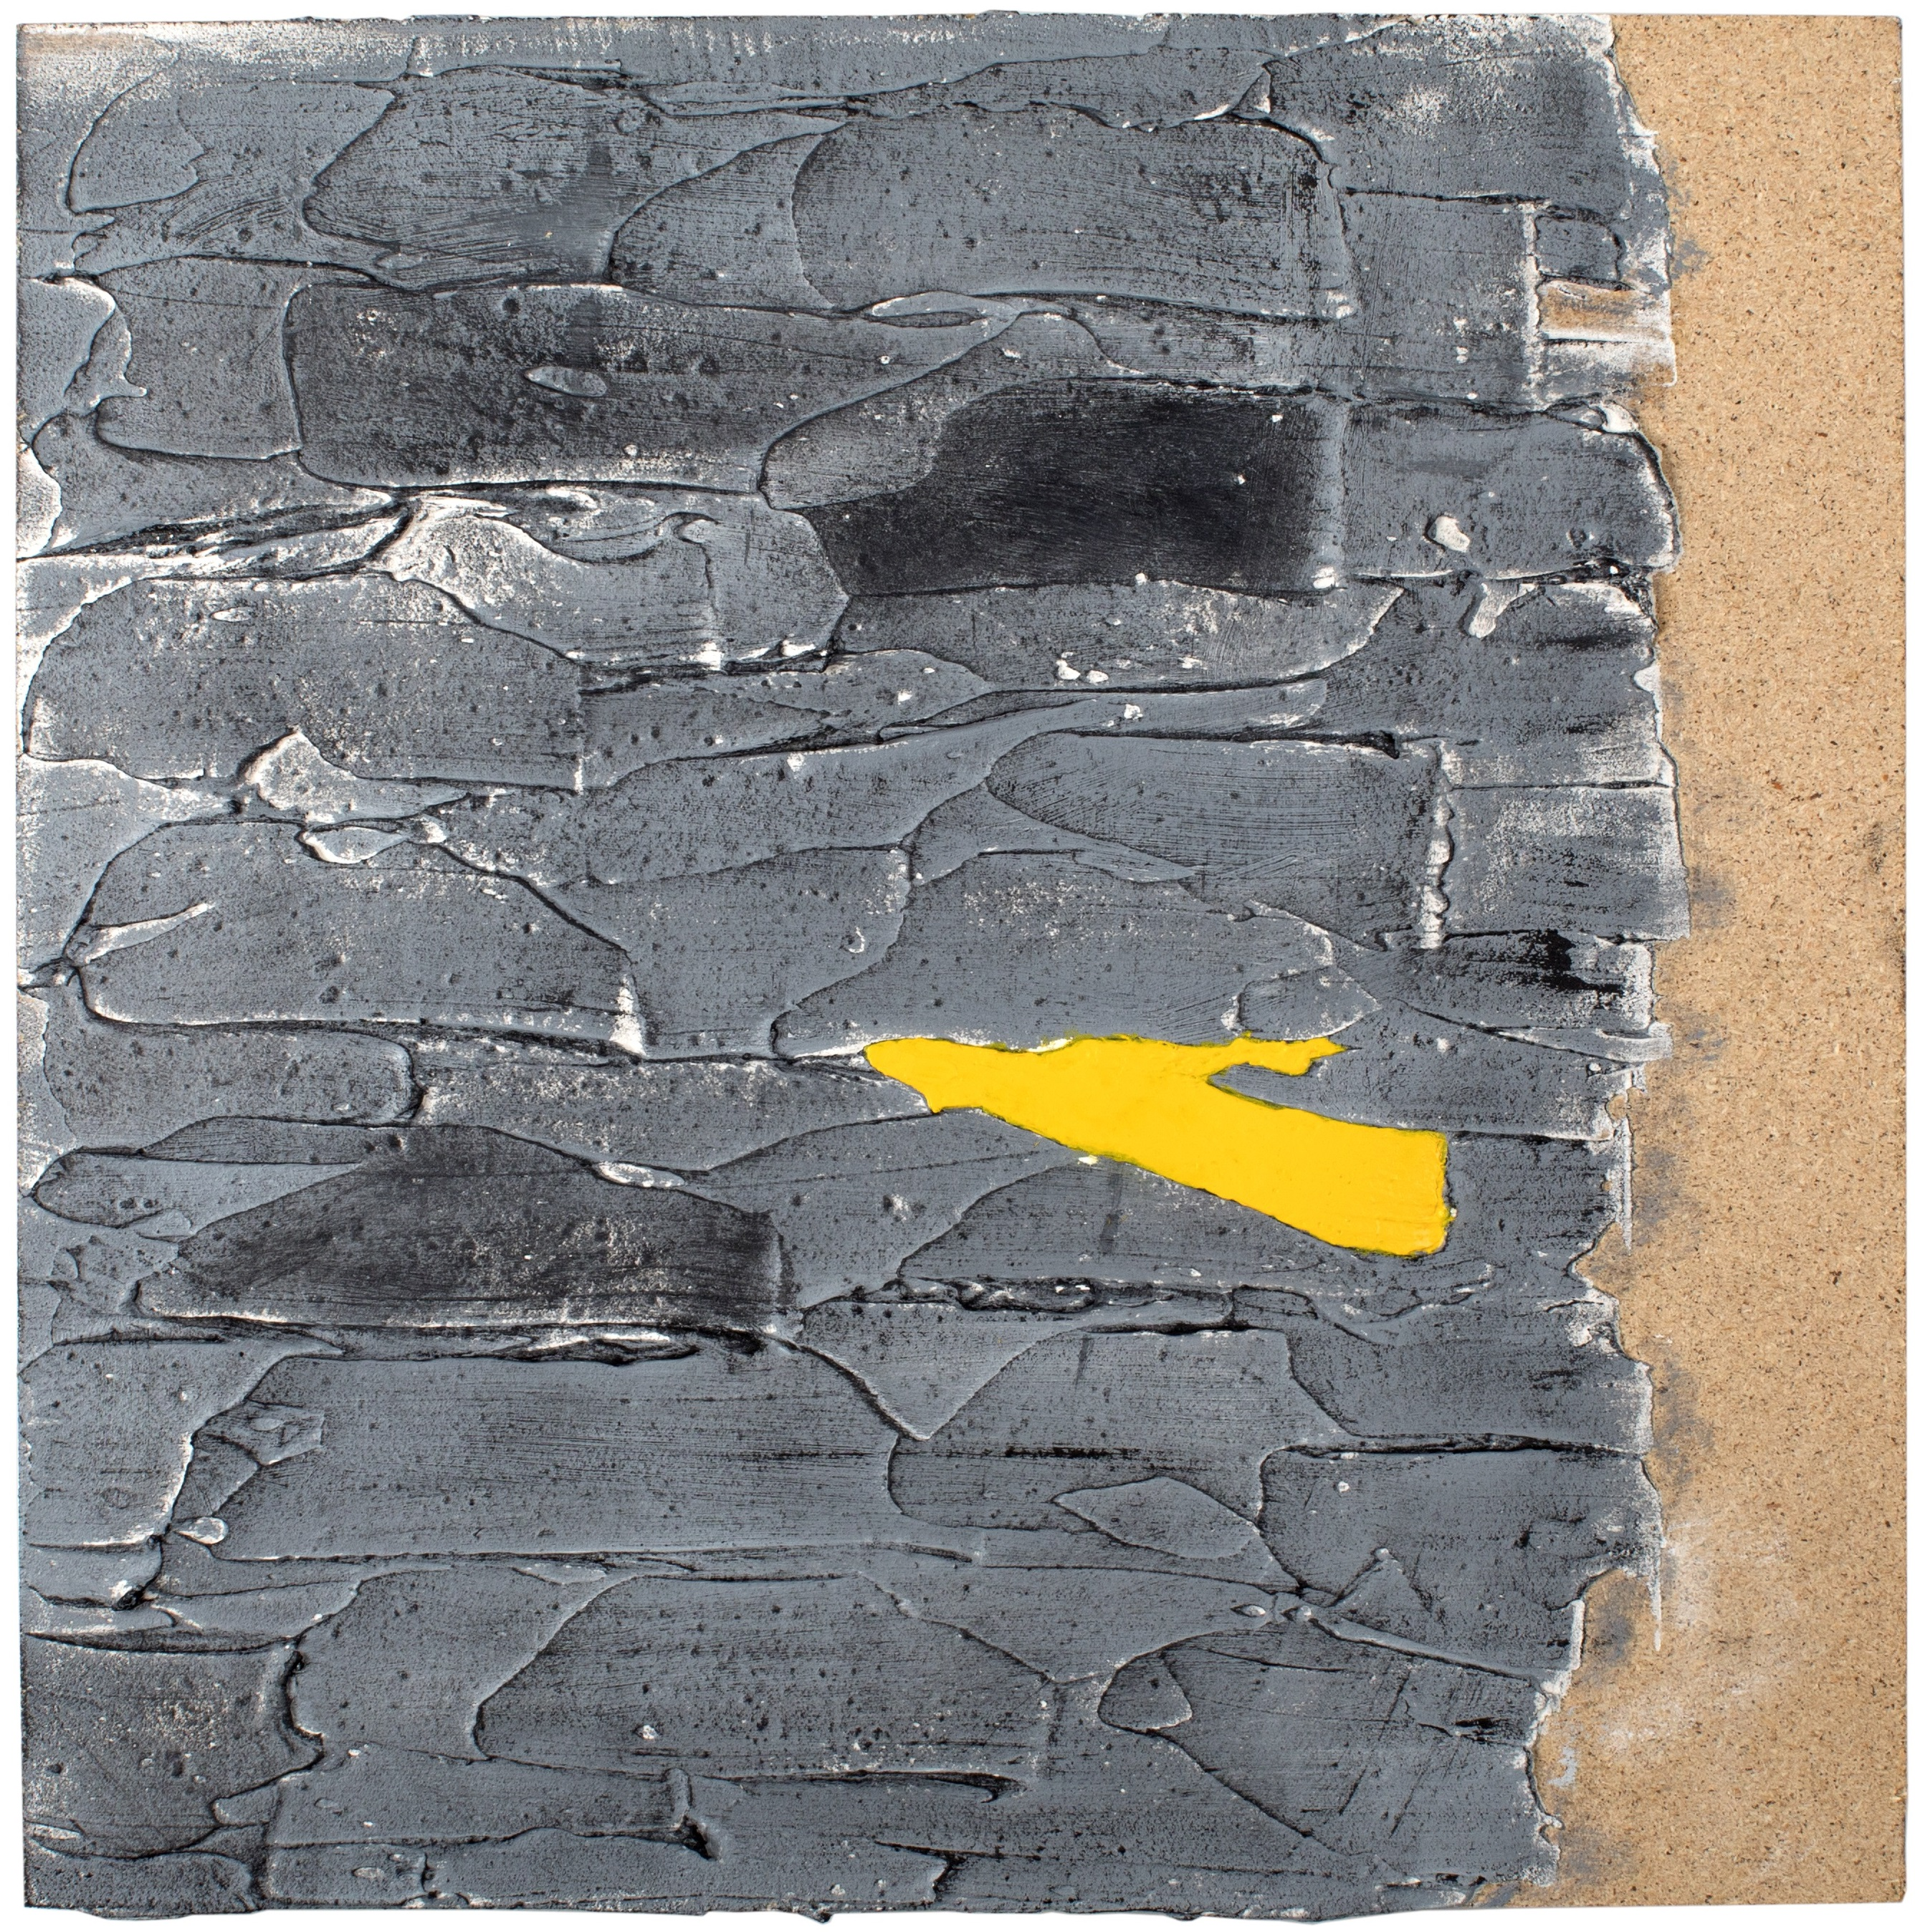 THE YELLOW MARK - Plaster and acrylic on chipboard, 45x45cm - AVAILABLE